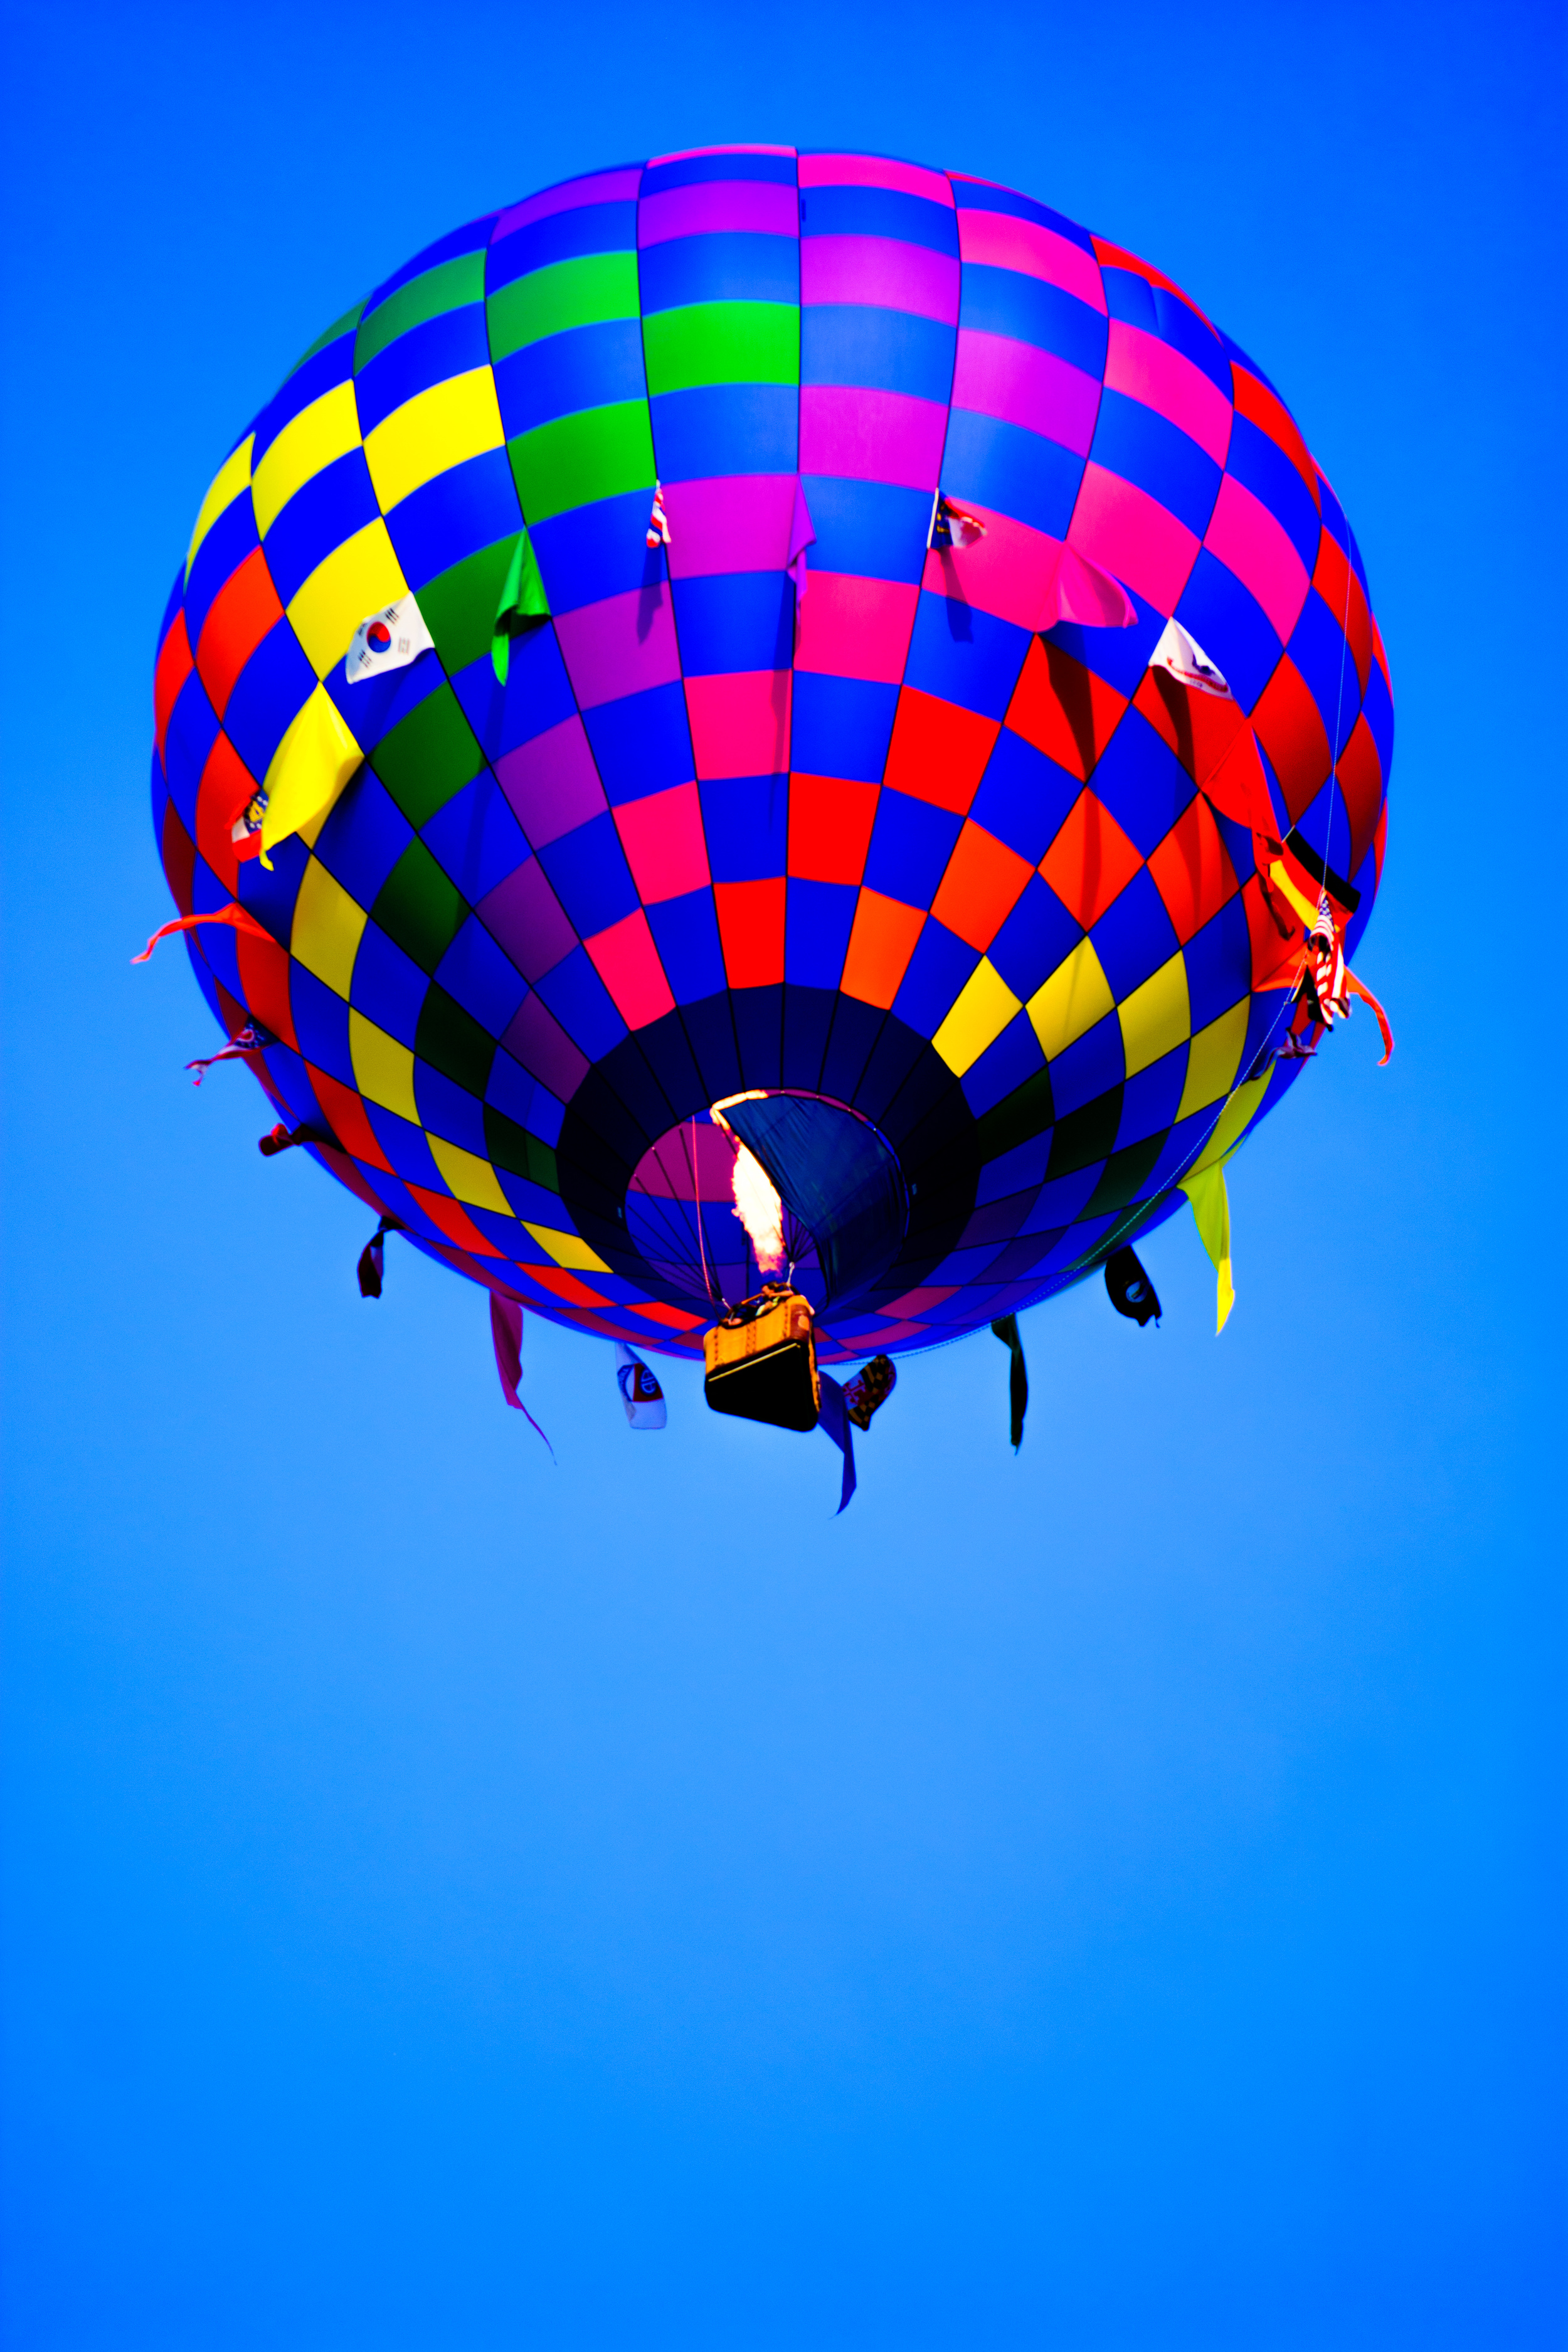 6/19: Hot air balloon on its journey wherever the wind blows